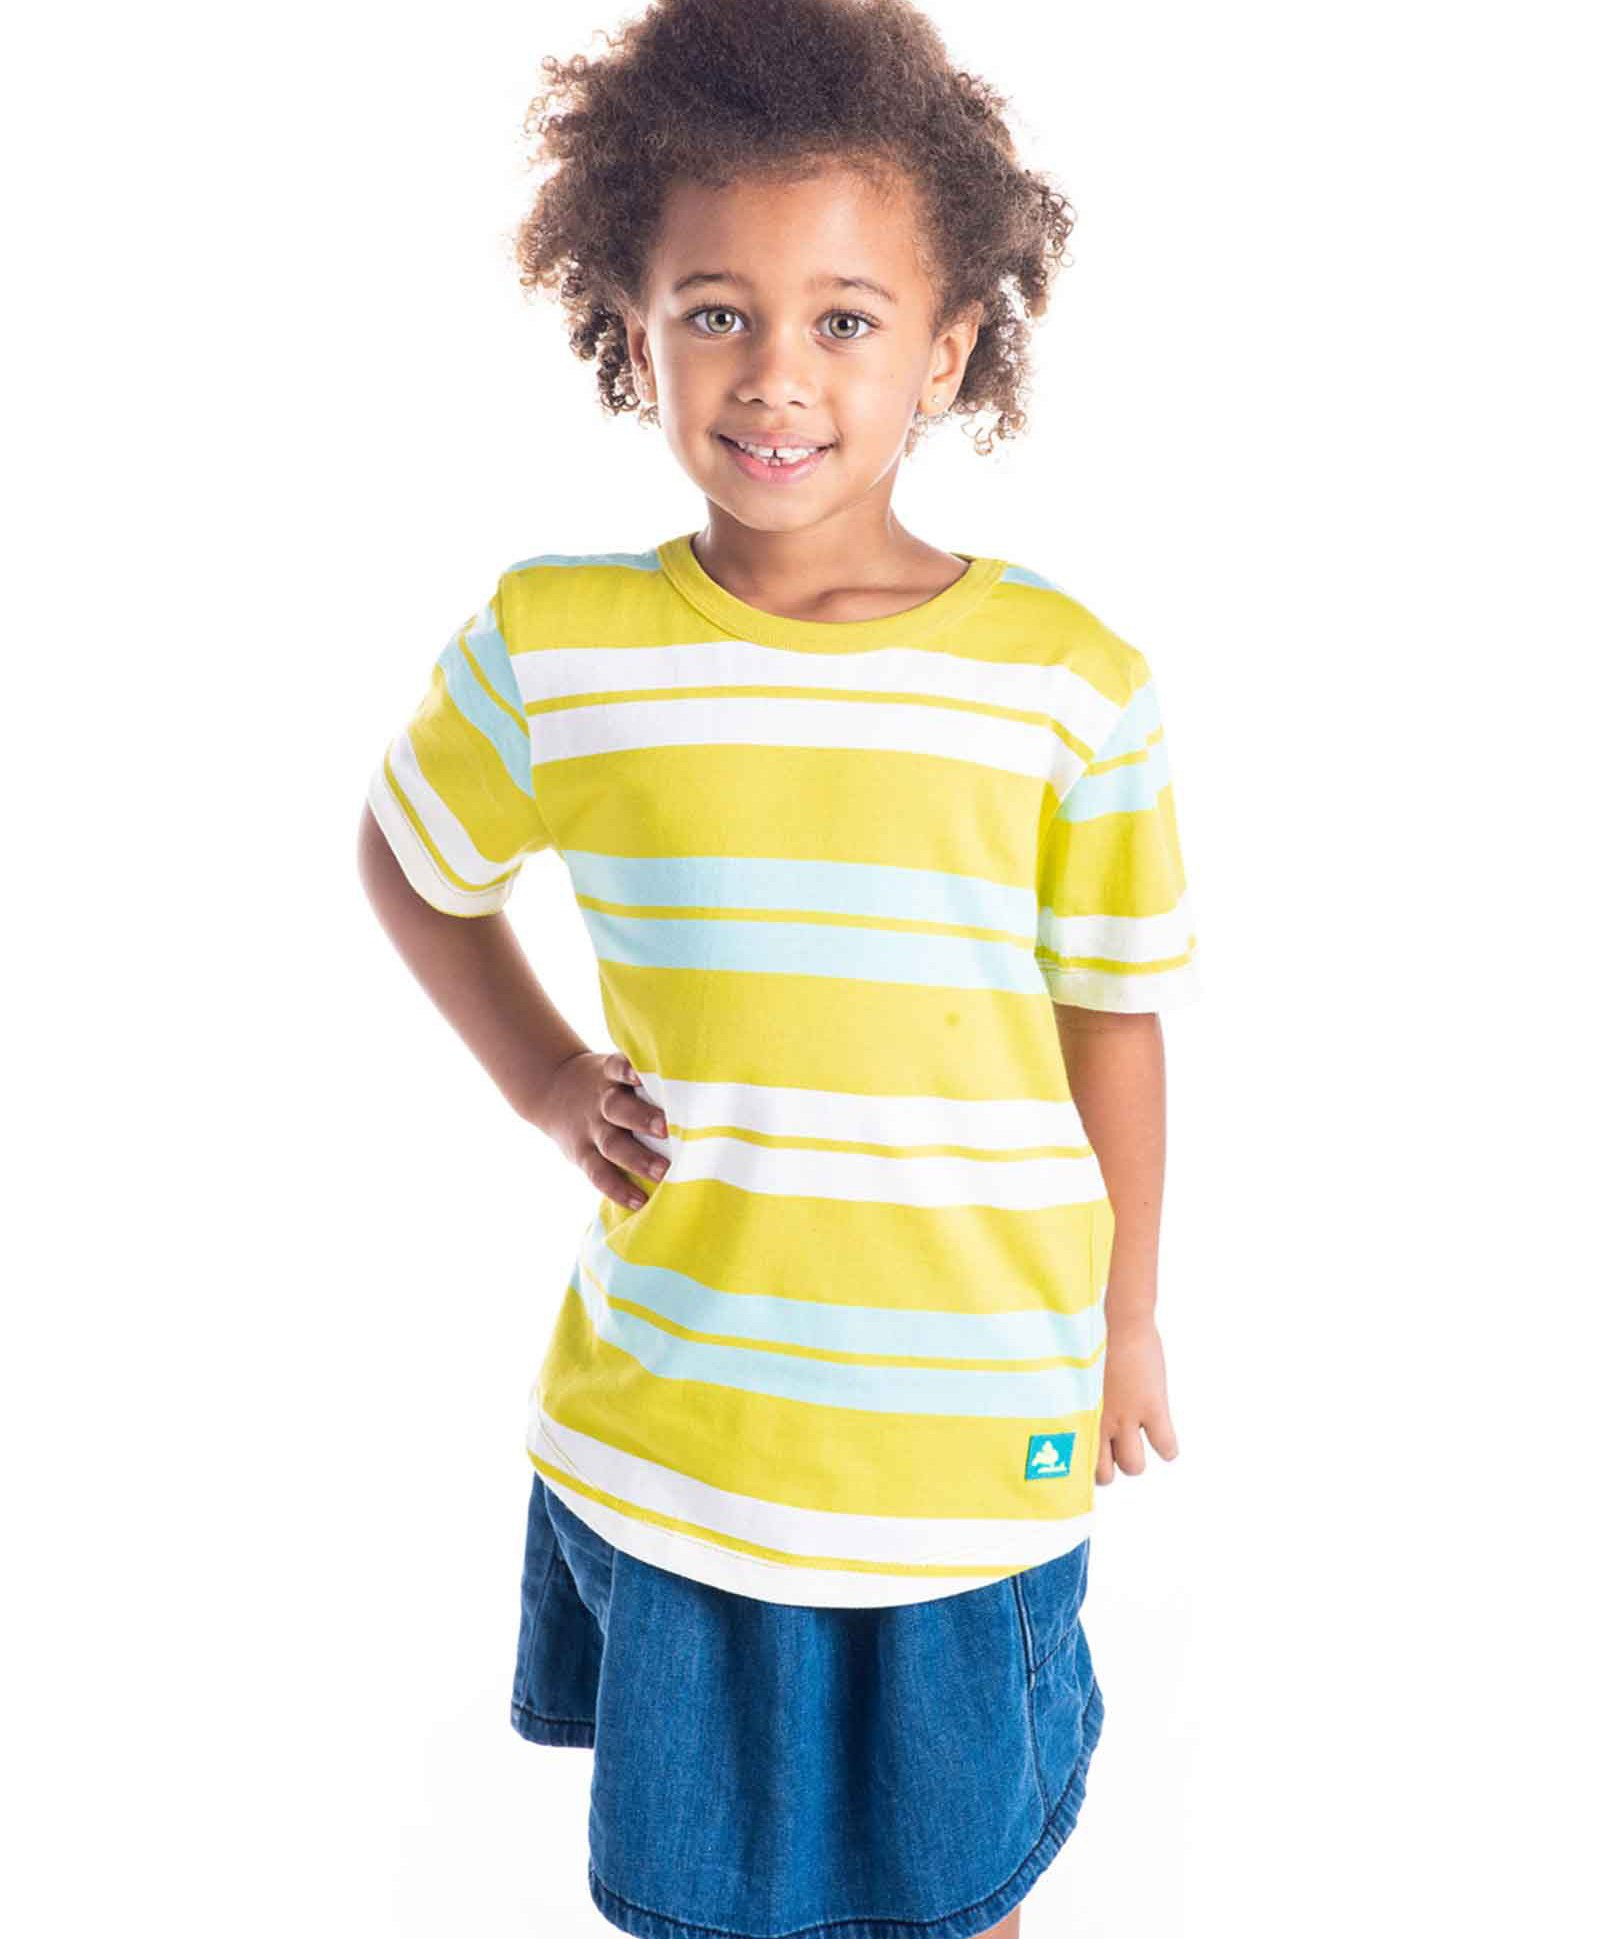 e450589a Buy Cherry Crumble California Half Sleeves Striped Tee Yellow for ...